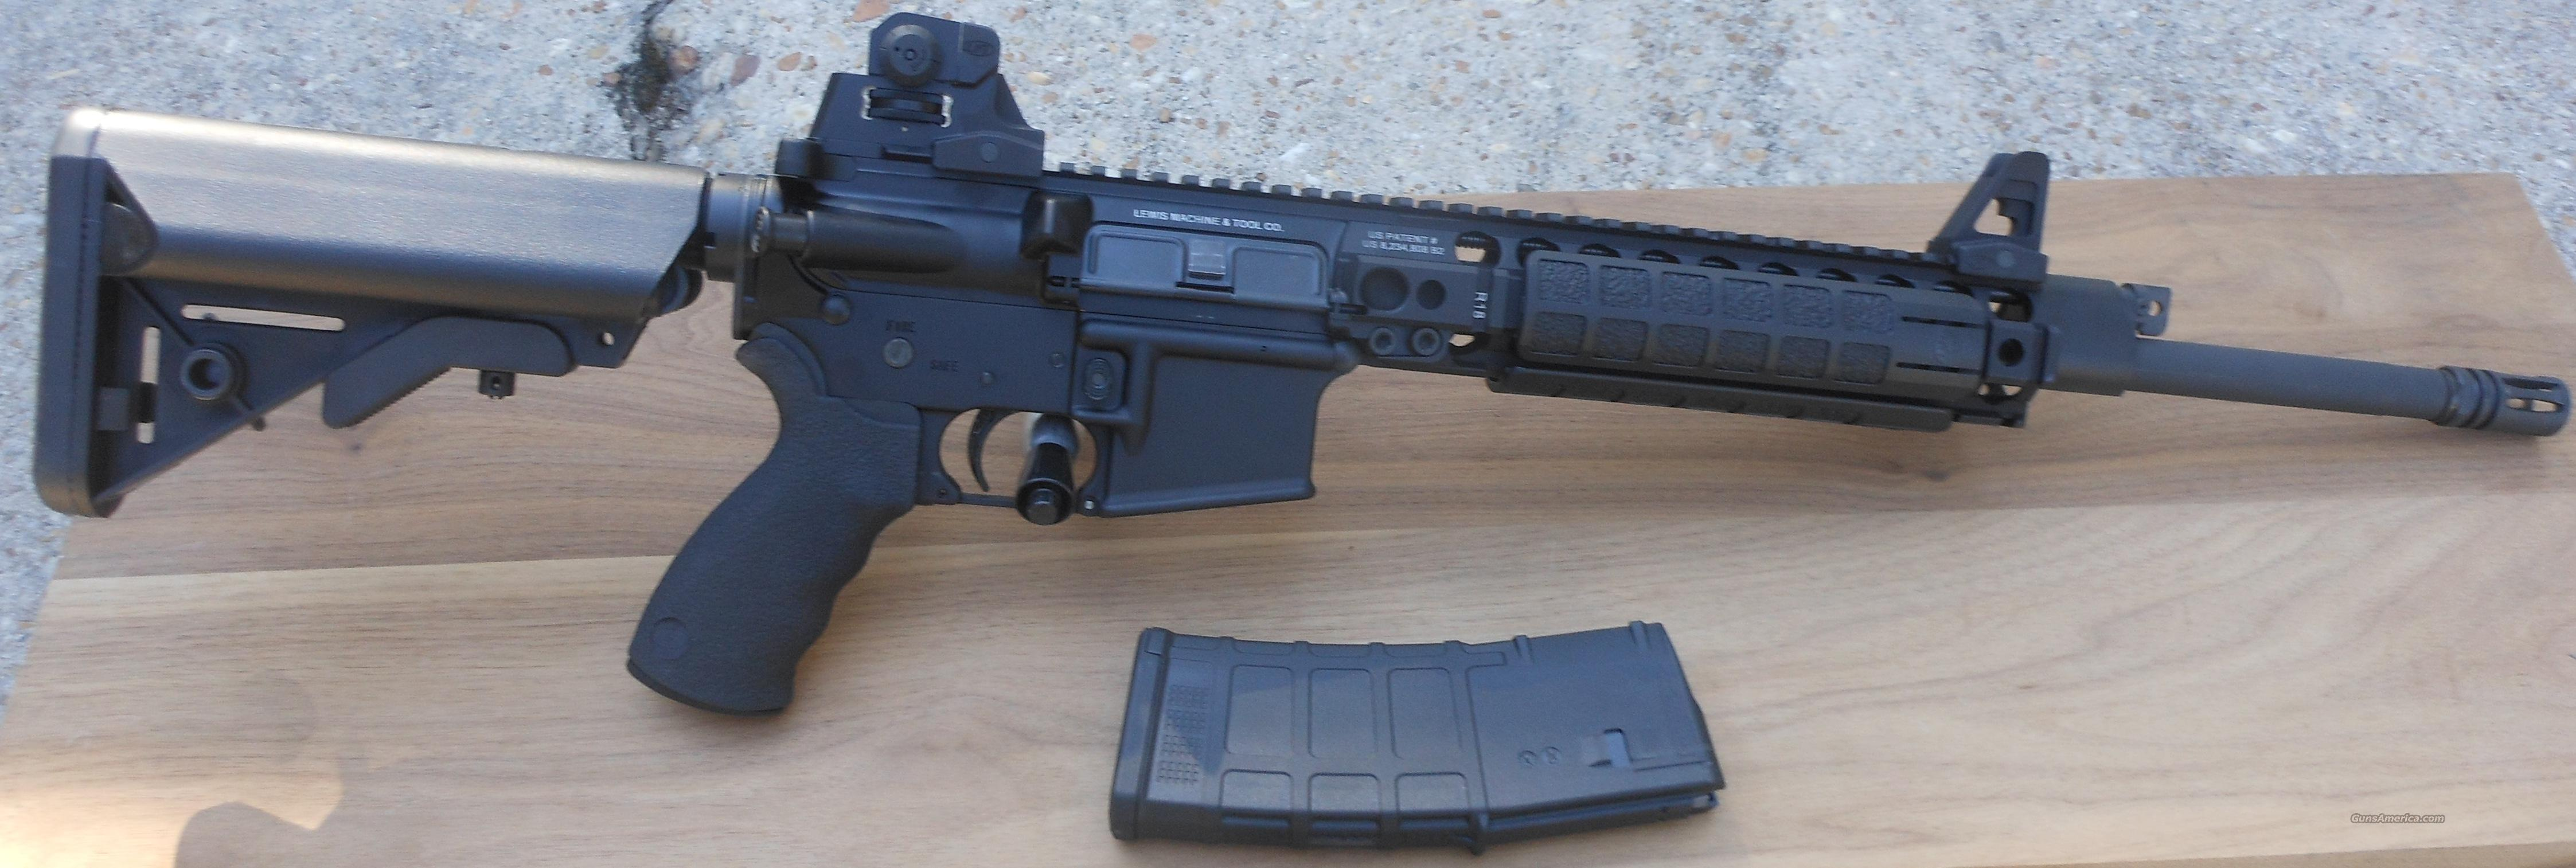 LMT MRP PISTON CQBPS16 5.56 AR15 M4 .223  Guns > Rifles > AR-15 Rifles - Small Manufacturers > Complete Rifle